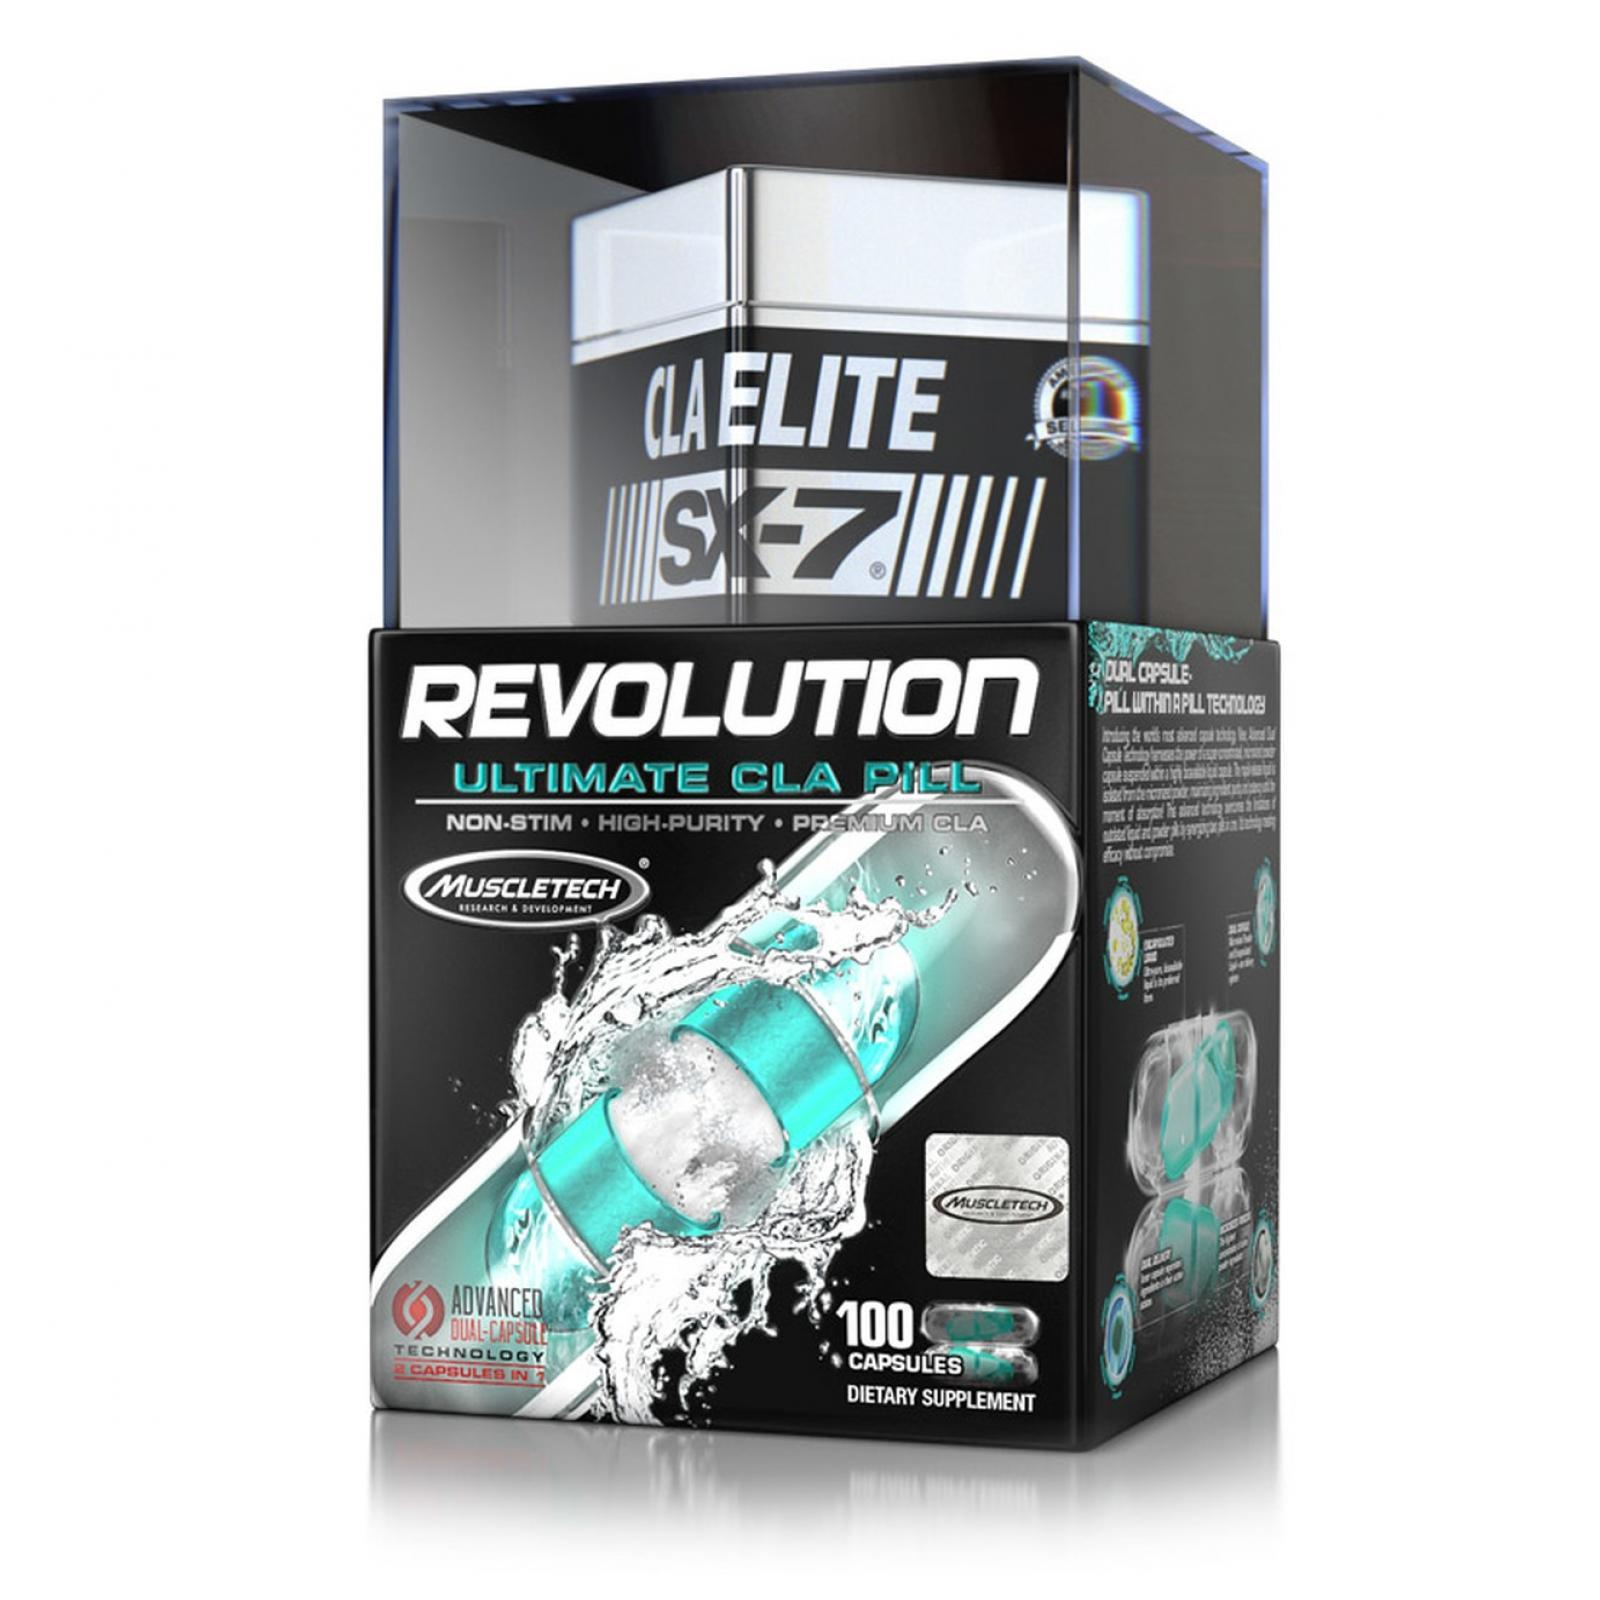 CLA ELITE SX-7 MUSCLETECH